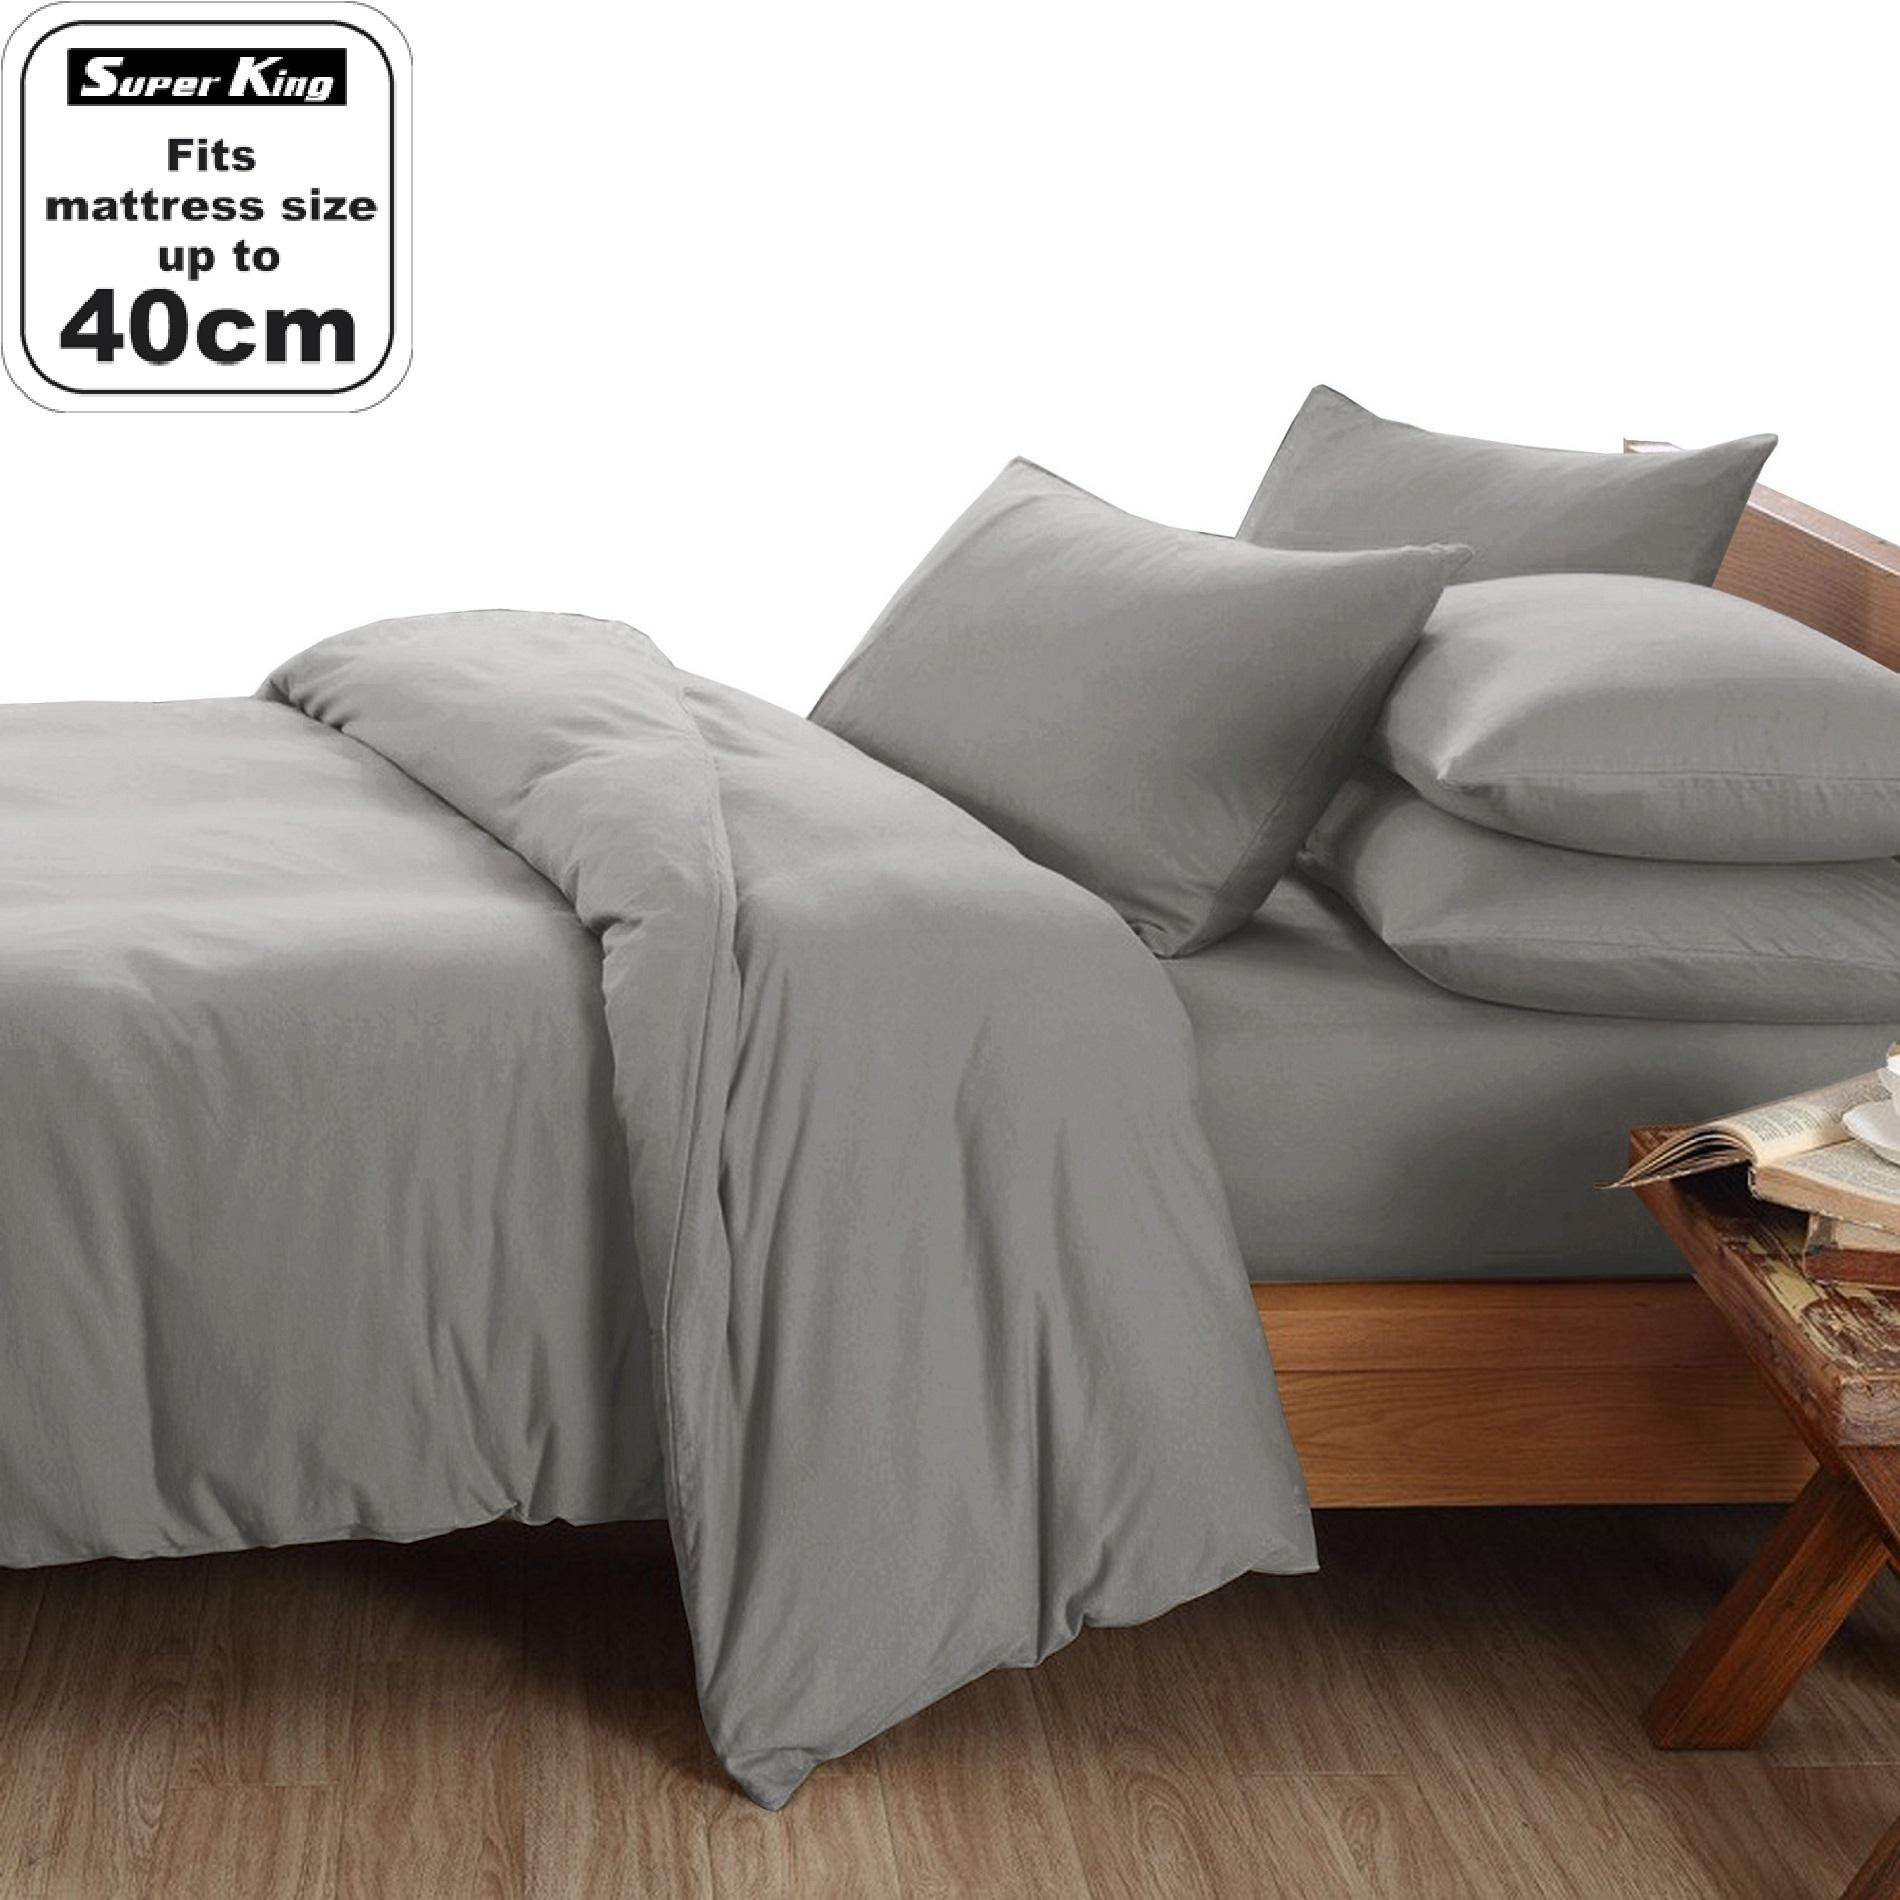 Essina Candies Super King 40cm Comforter & Fitted Bed sheet set Plain & Hotel Cadar Super King 100% Cotton 620 thread counts (fit 16 inch High Mattress)